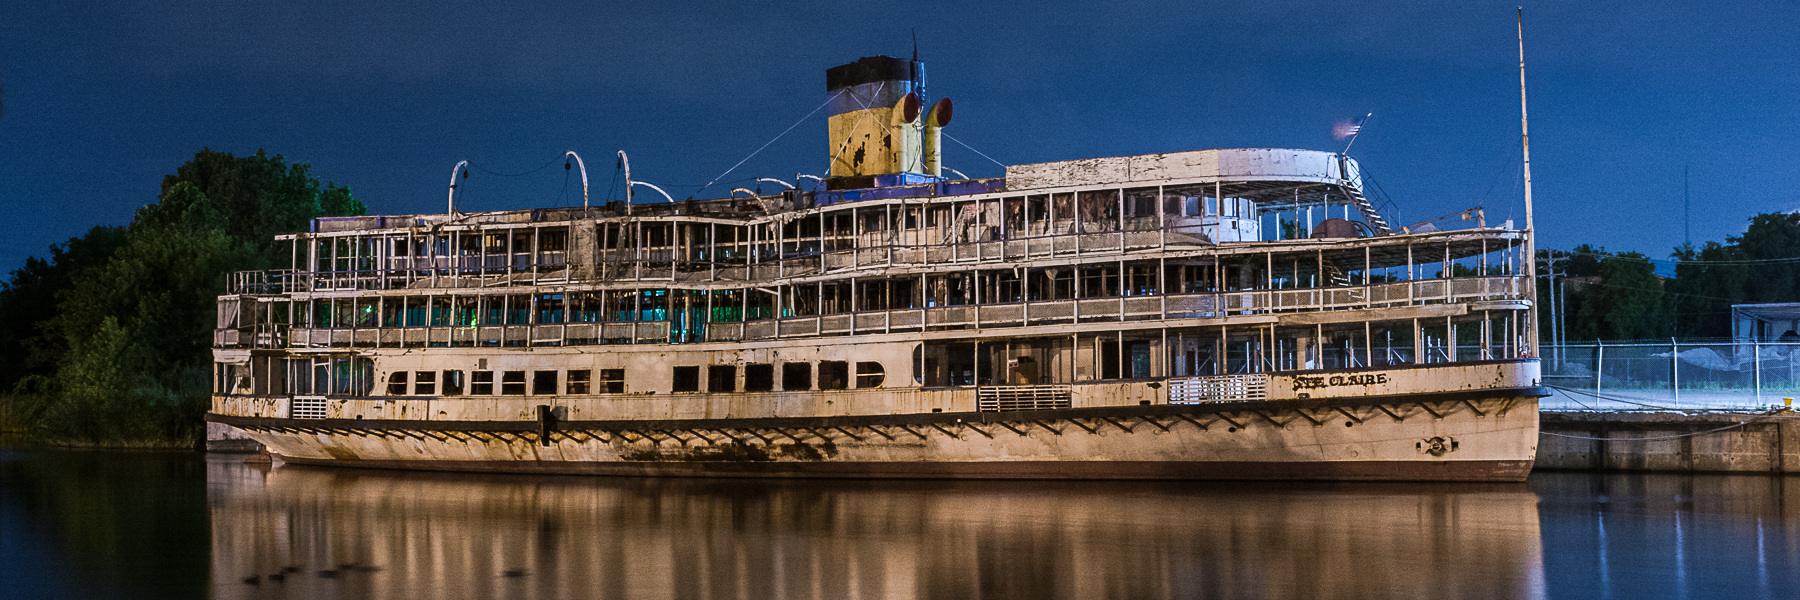 Bob-Lo Ste. Claire Nocturne - Bob-Lo steamer Ste. Claire rests at her berth on the Rouge River.  --  26 June 2016